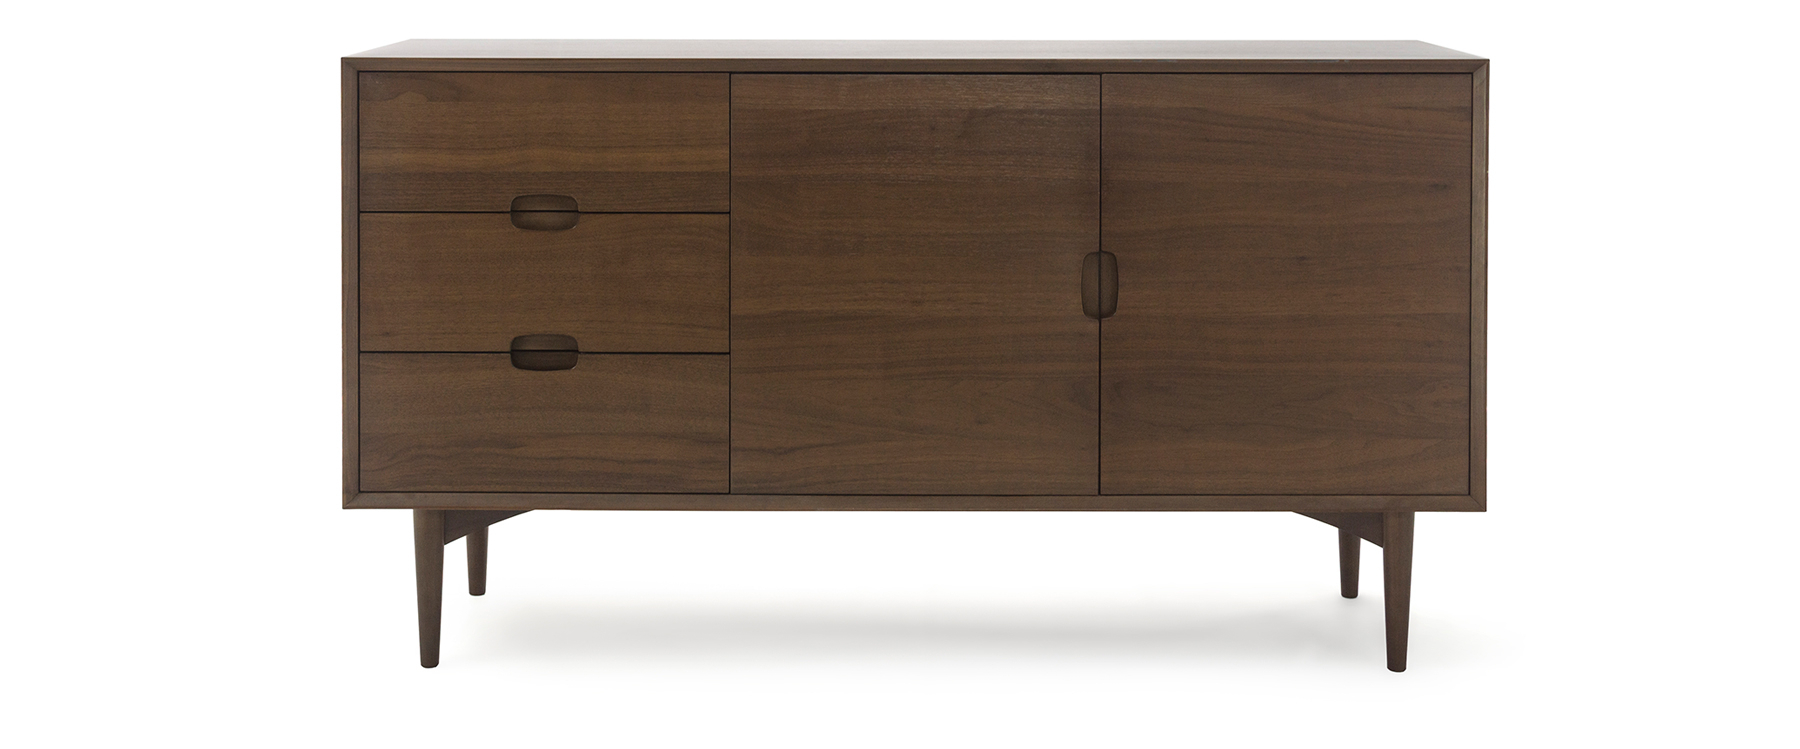 Most Recently Released Sideboard Furniture & Cabinets (View 11 of 20)